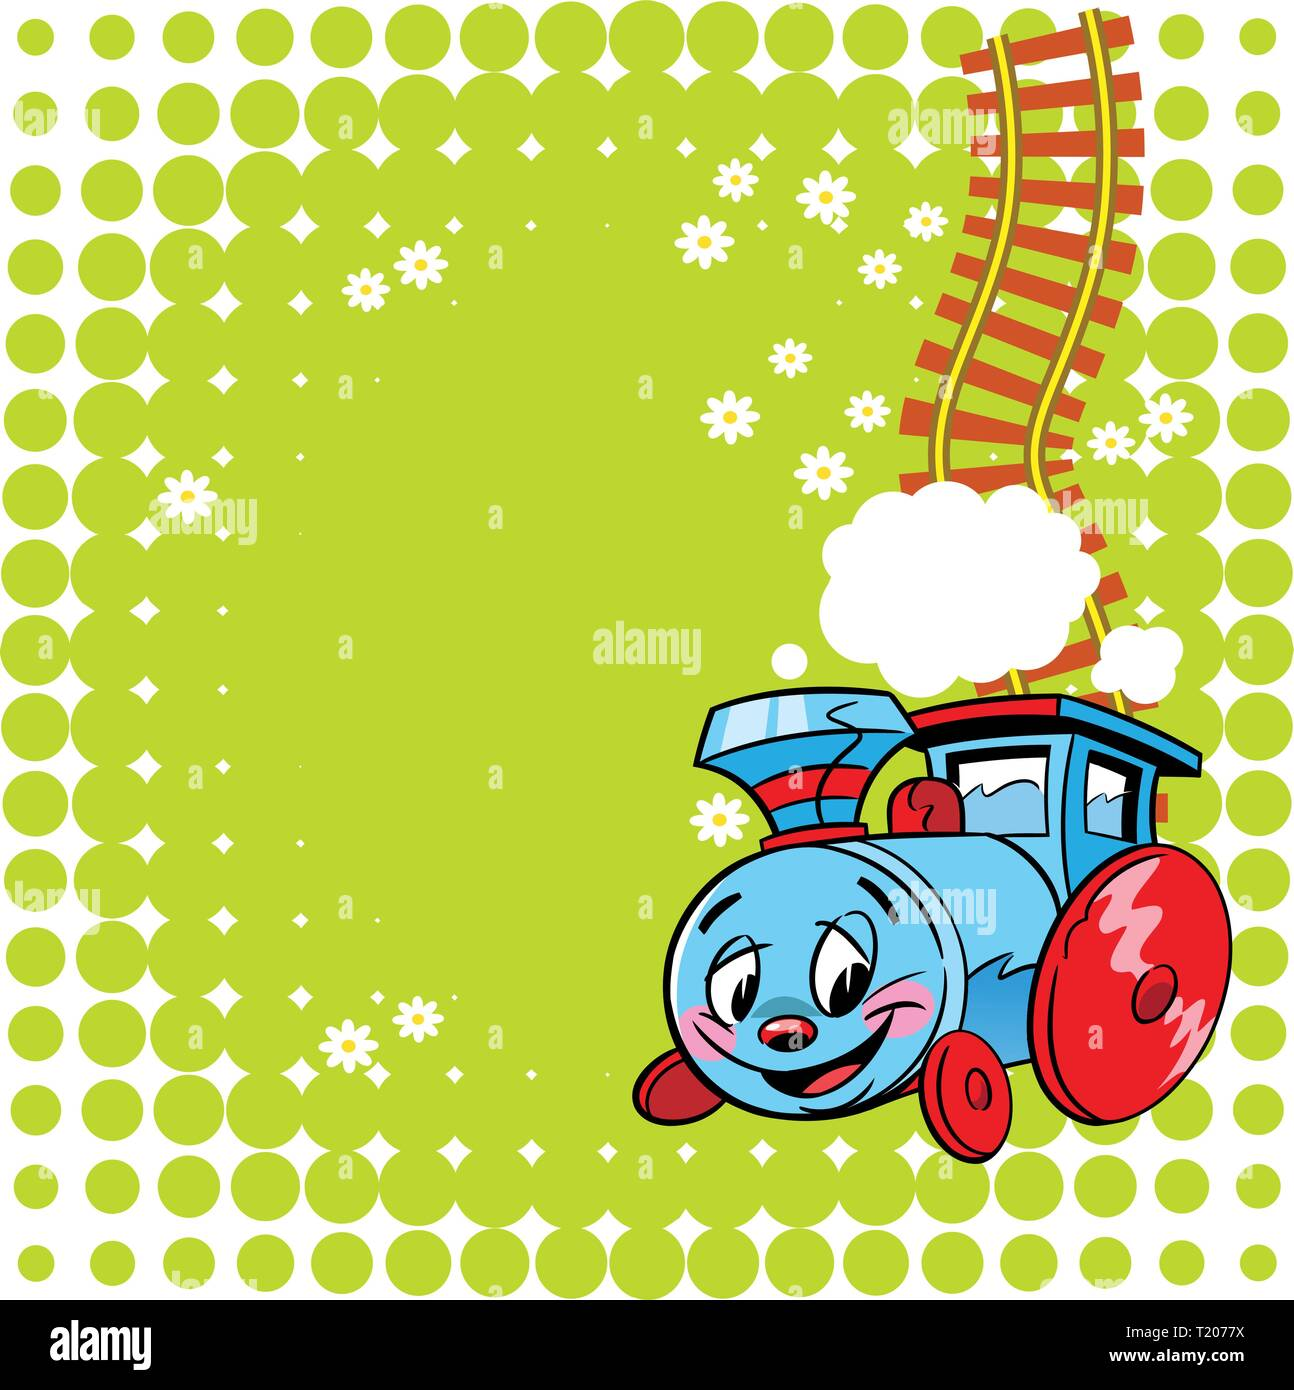 The Illustration Shows A Funny Toy Locomotive On A Green Background